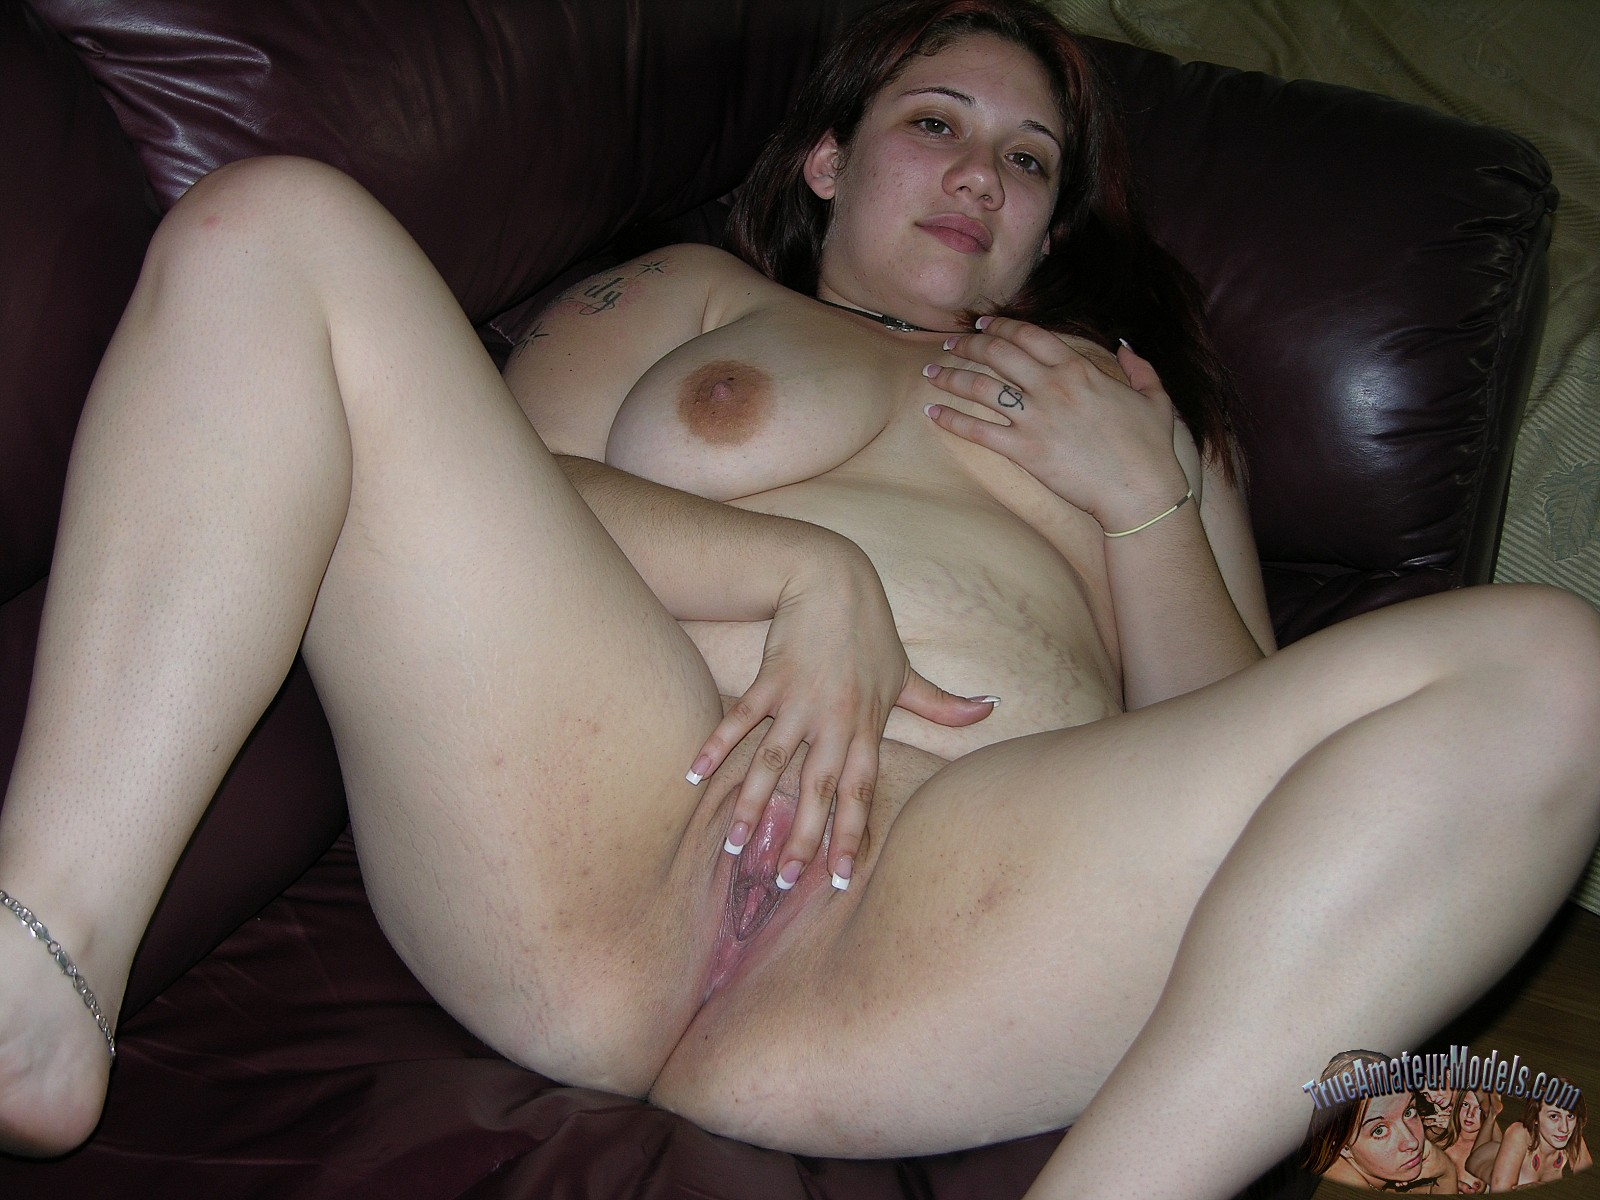 Chubby amateur girl spreads her pussy